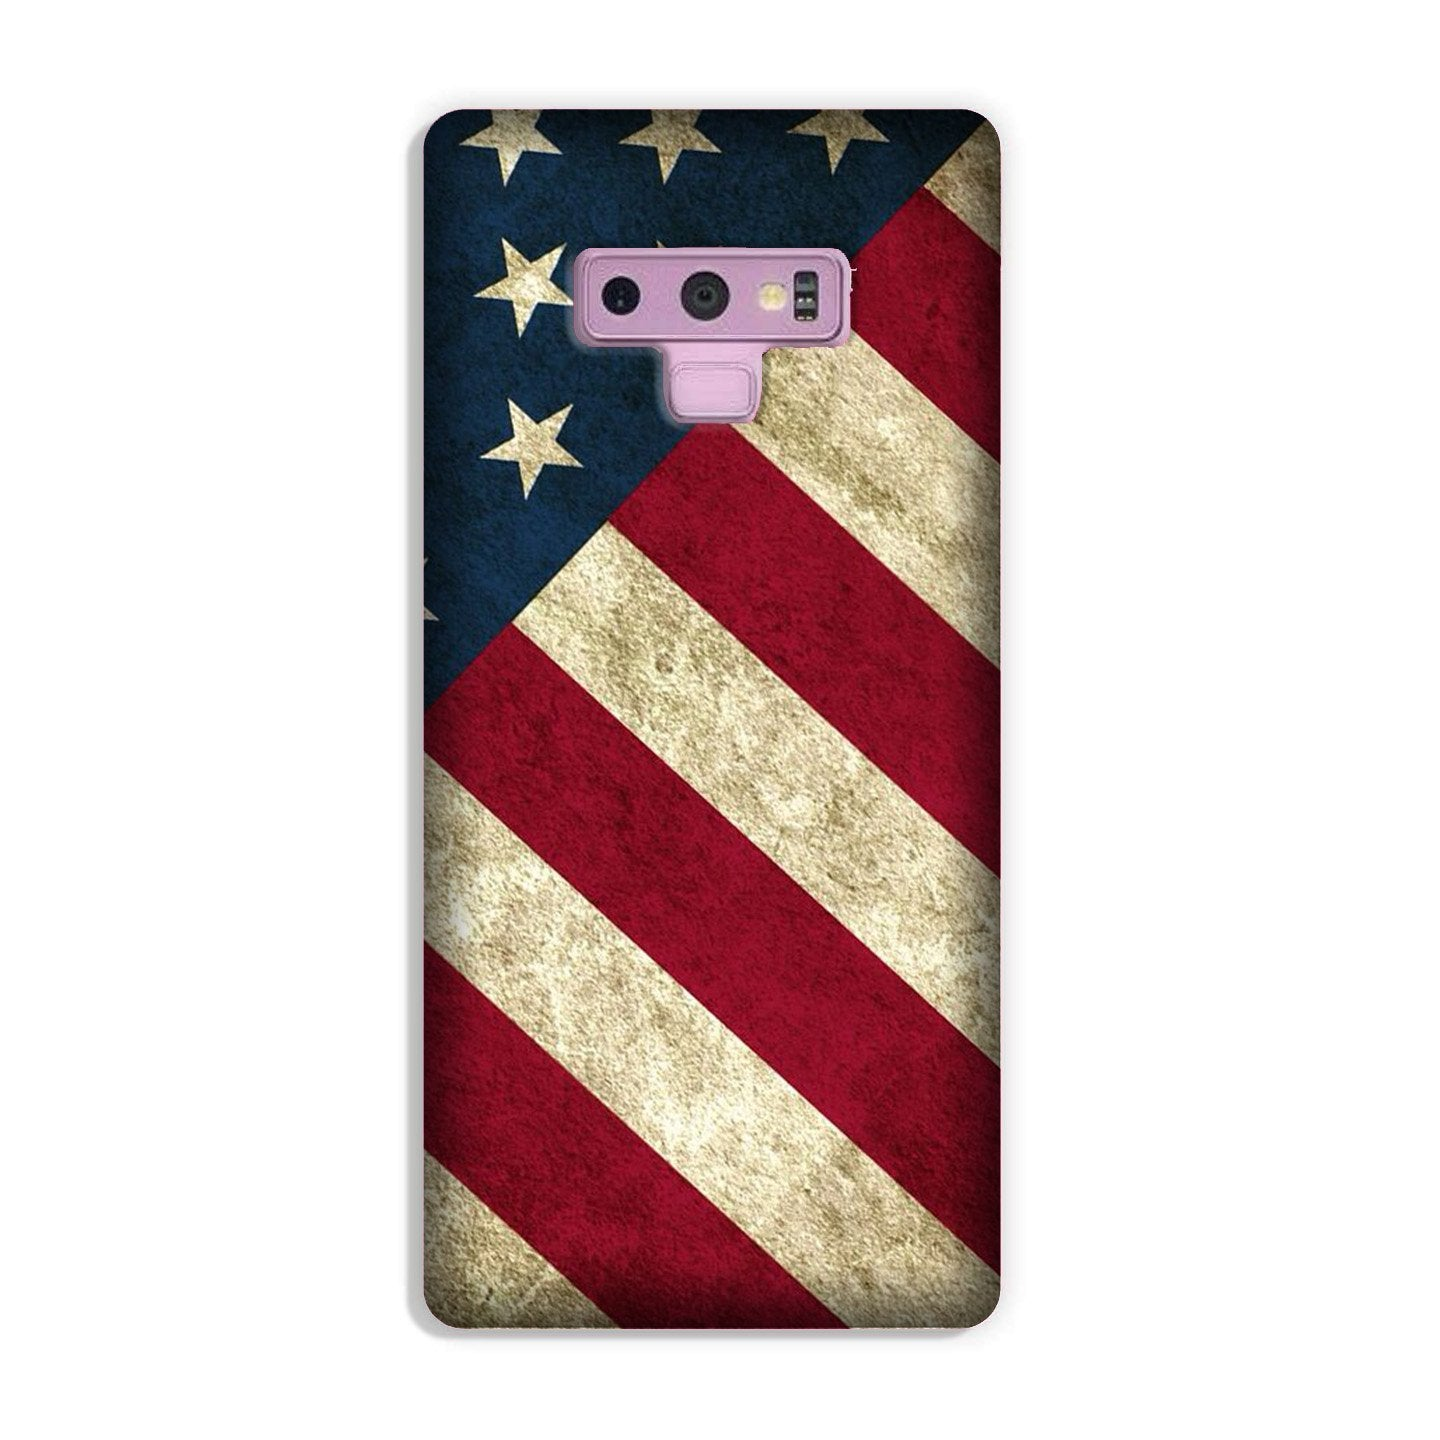 America Case for Galaxy Note 9